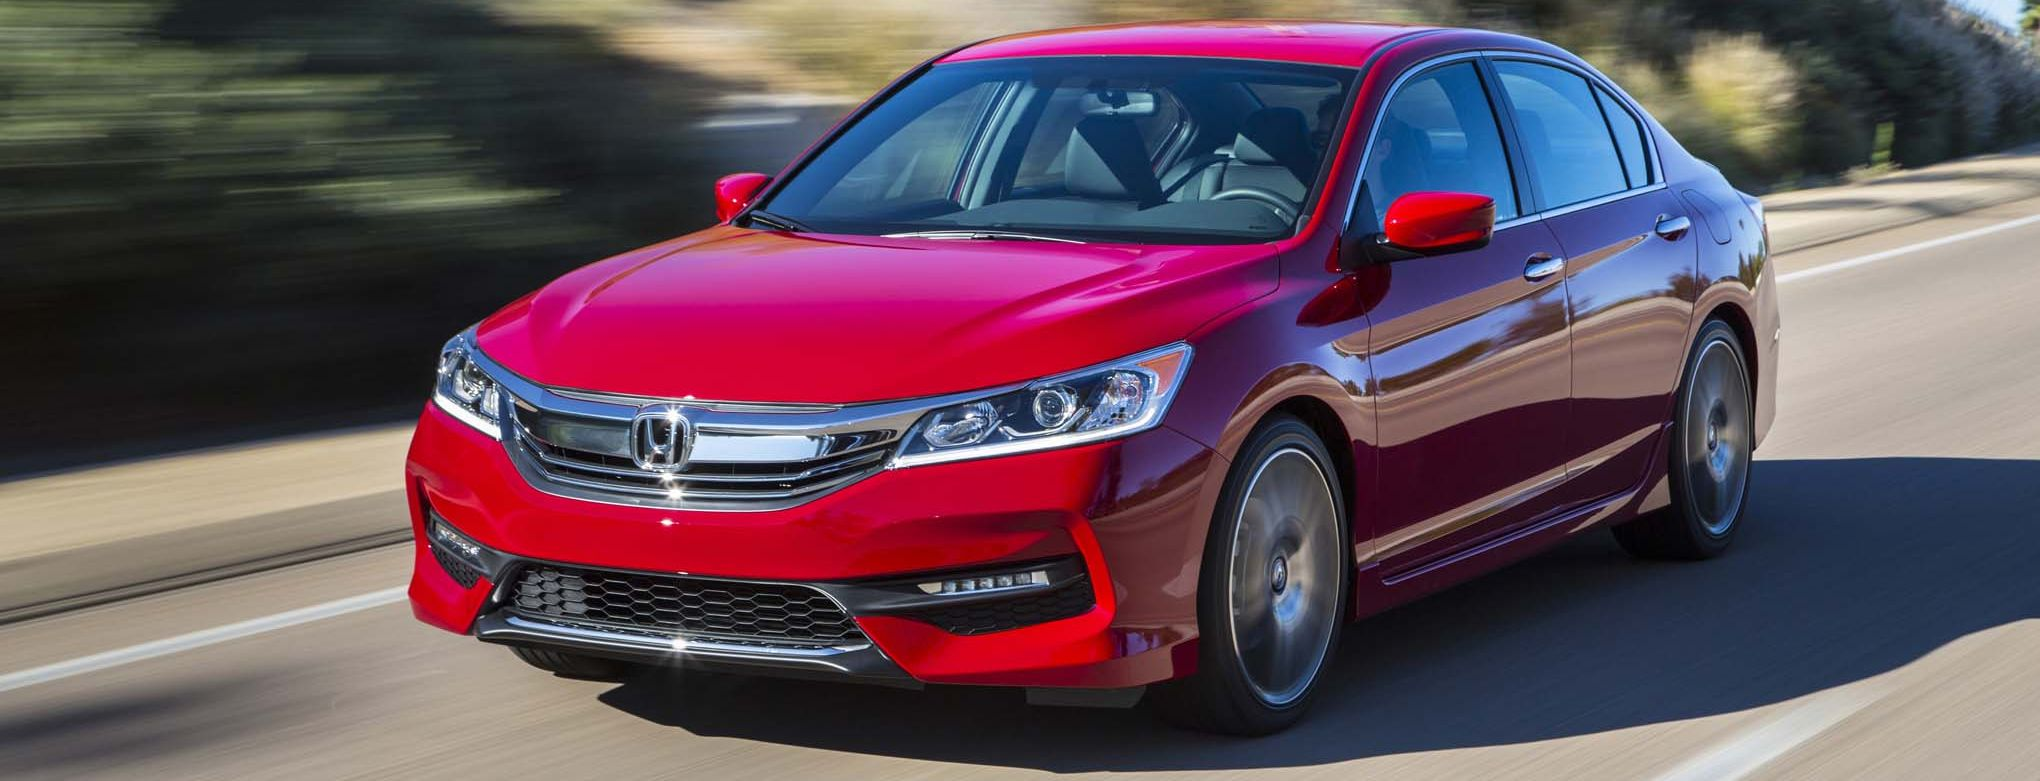 2017 Honda Accord For Sale Near Atlanta, GA